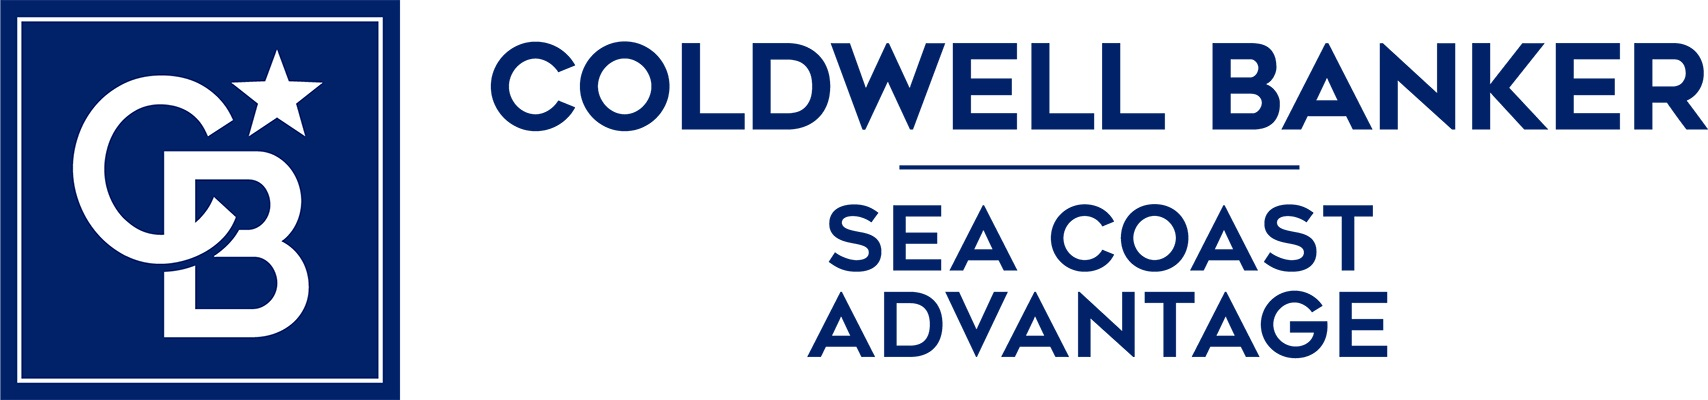 Katie Jones - Coldwell Banker Sea Coast Advantage Realty Logo